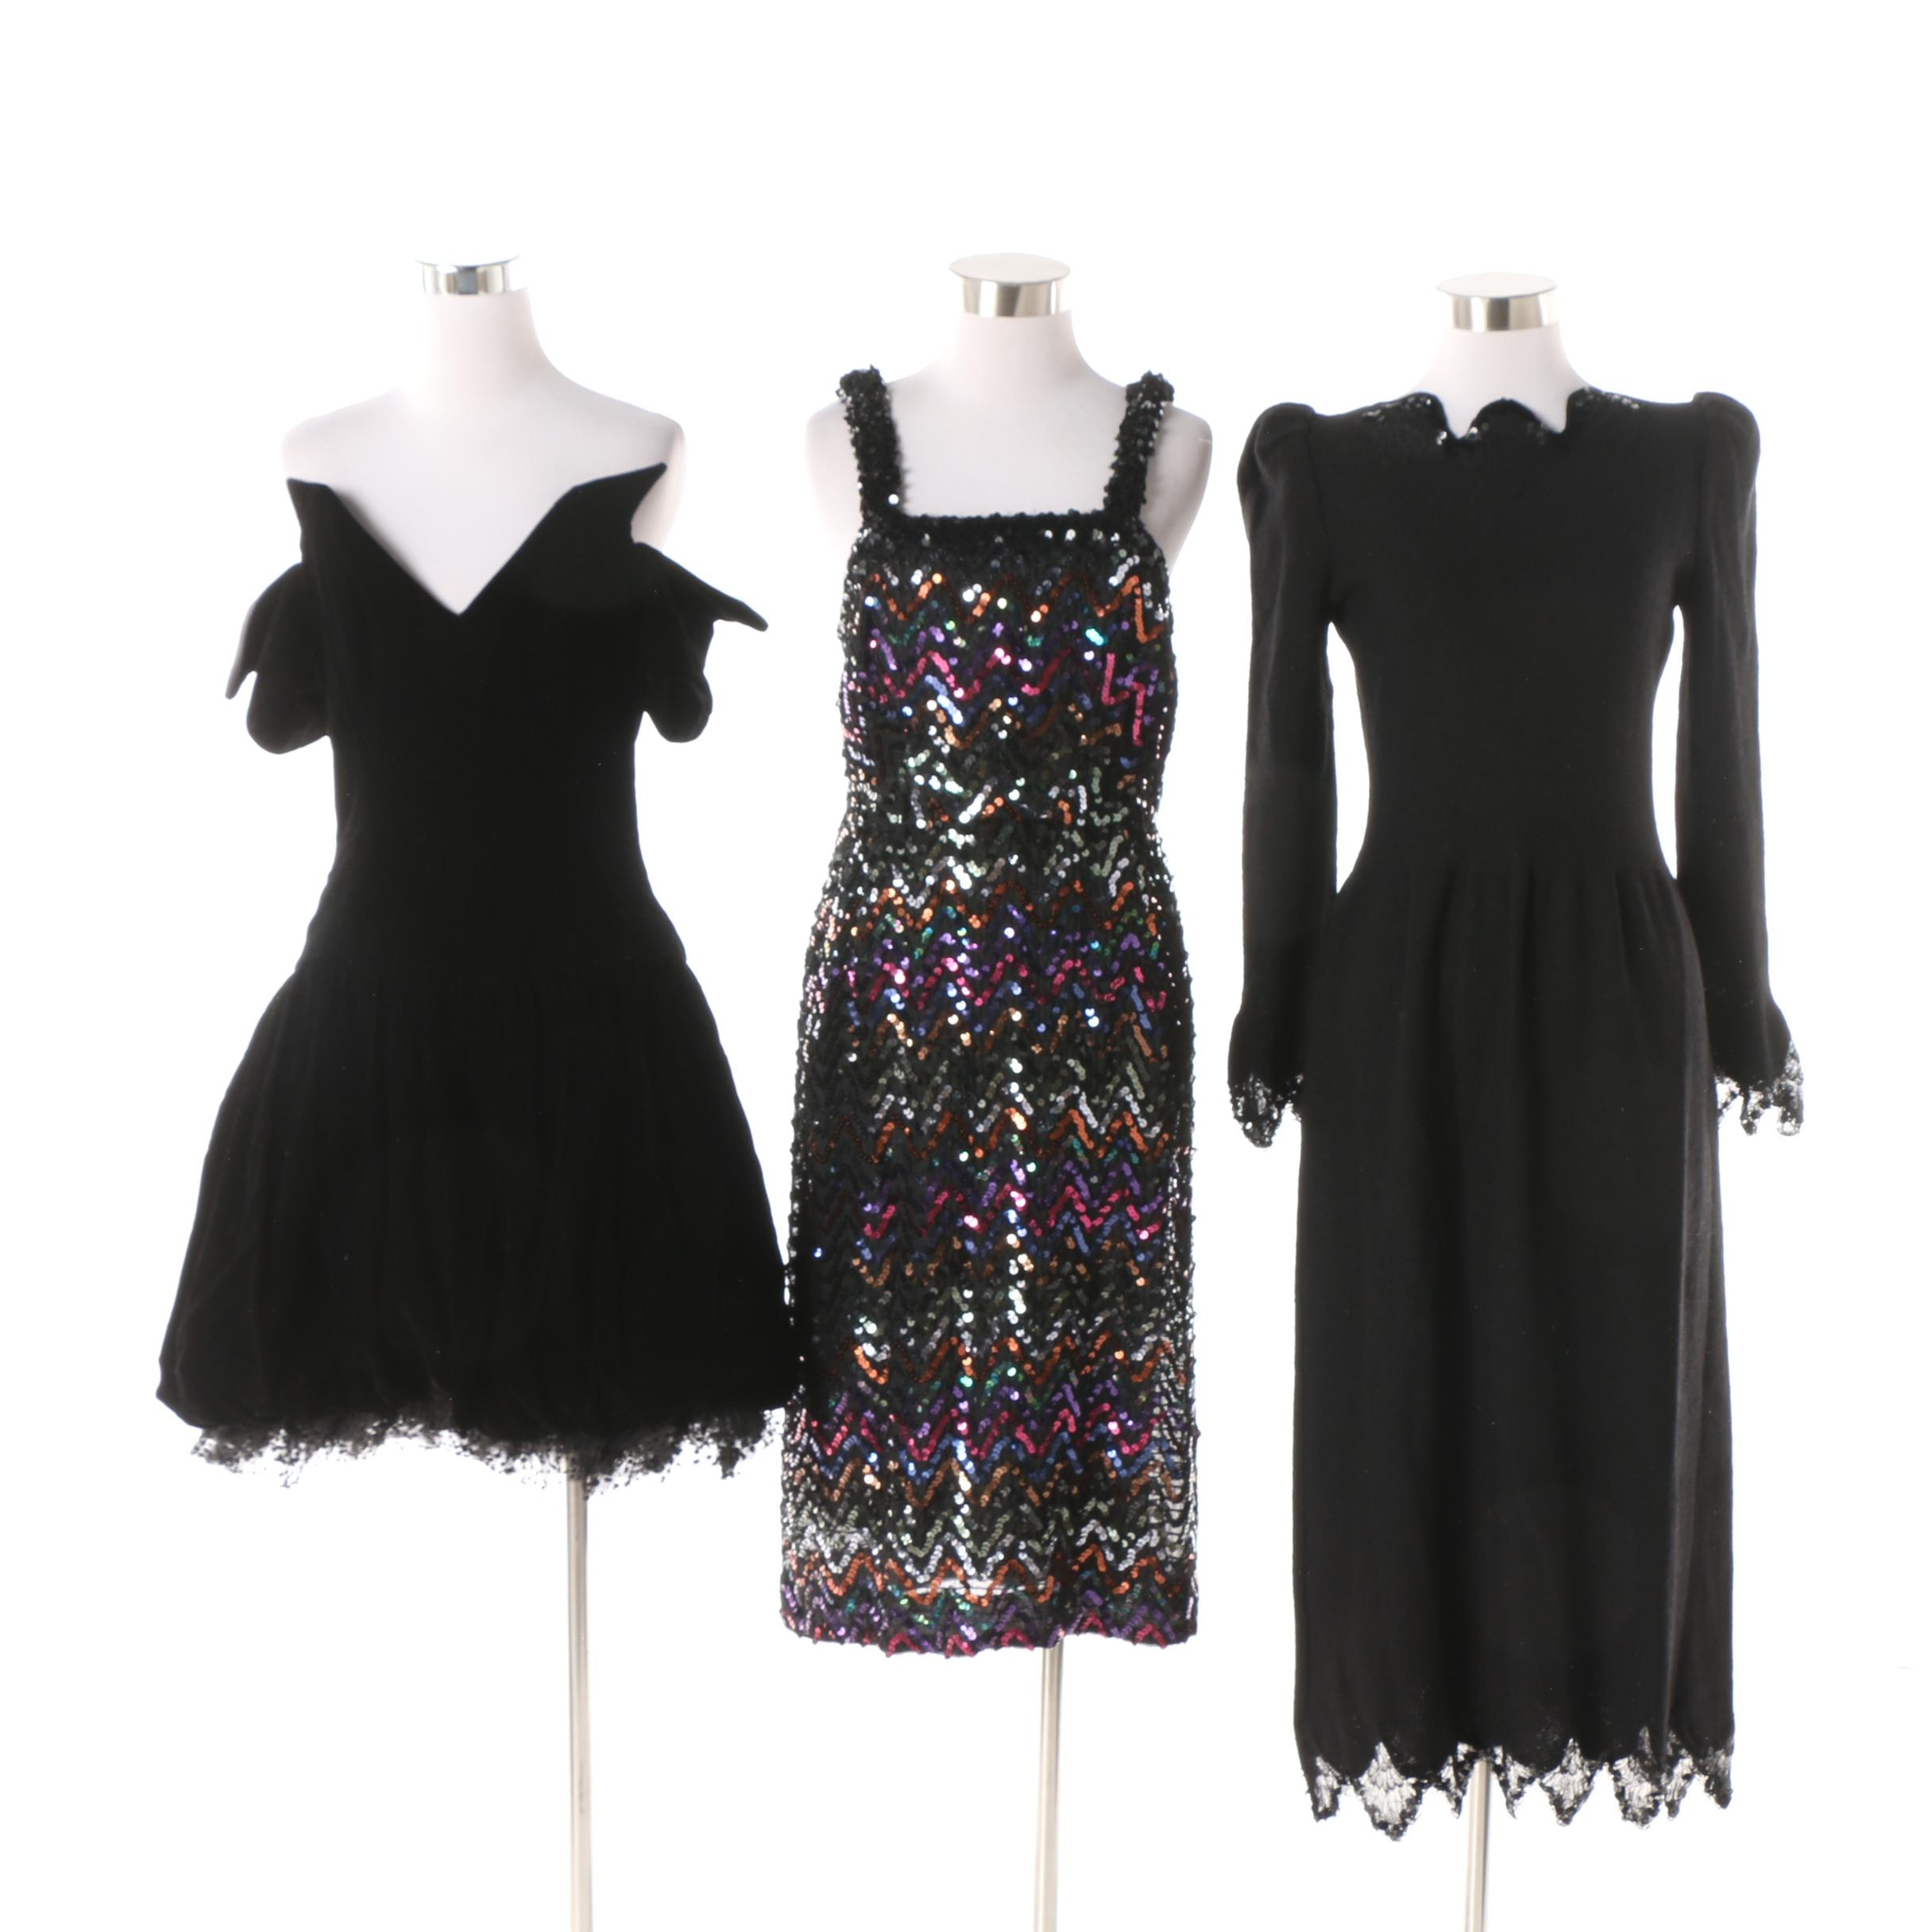 Circa 1980s Vintage Lilli Diamond Chevron Sequined and Other Evening Dresses